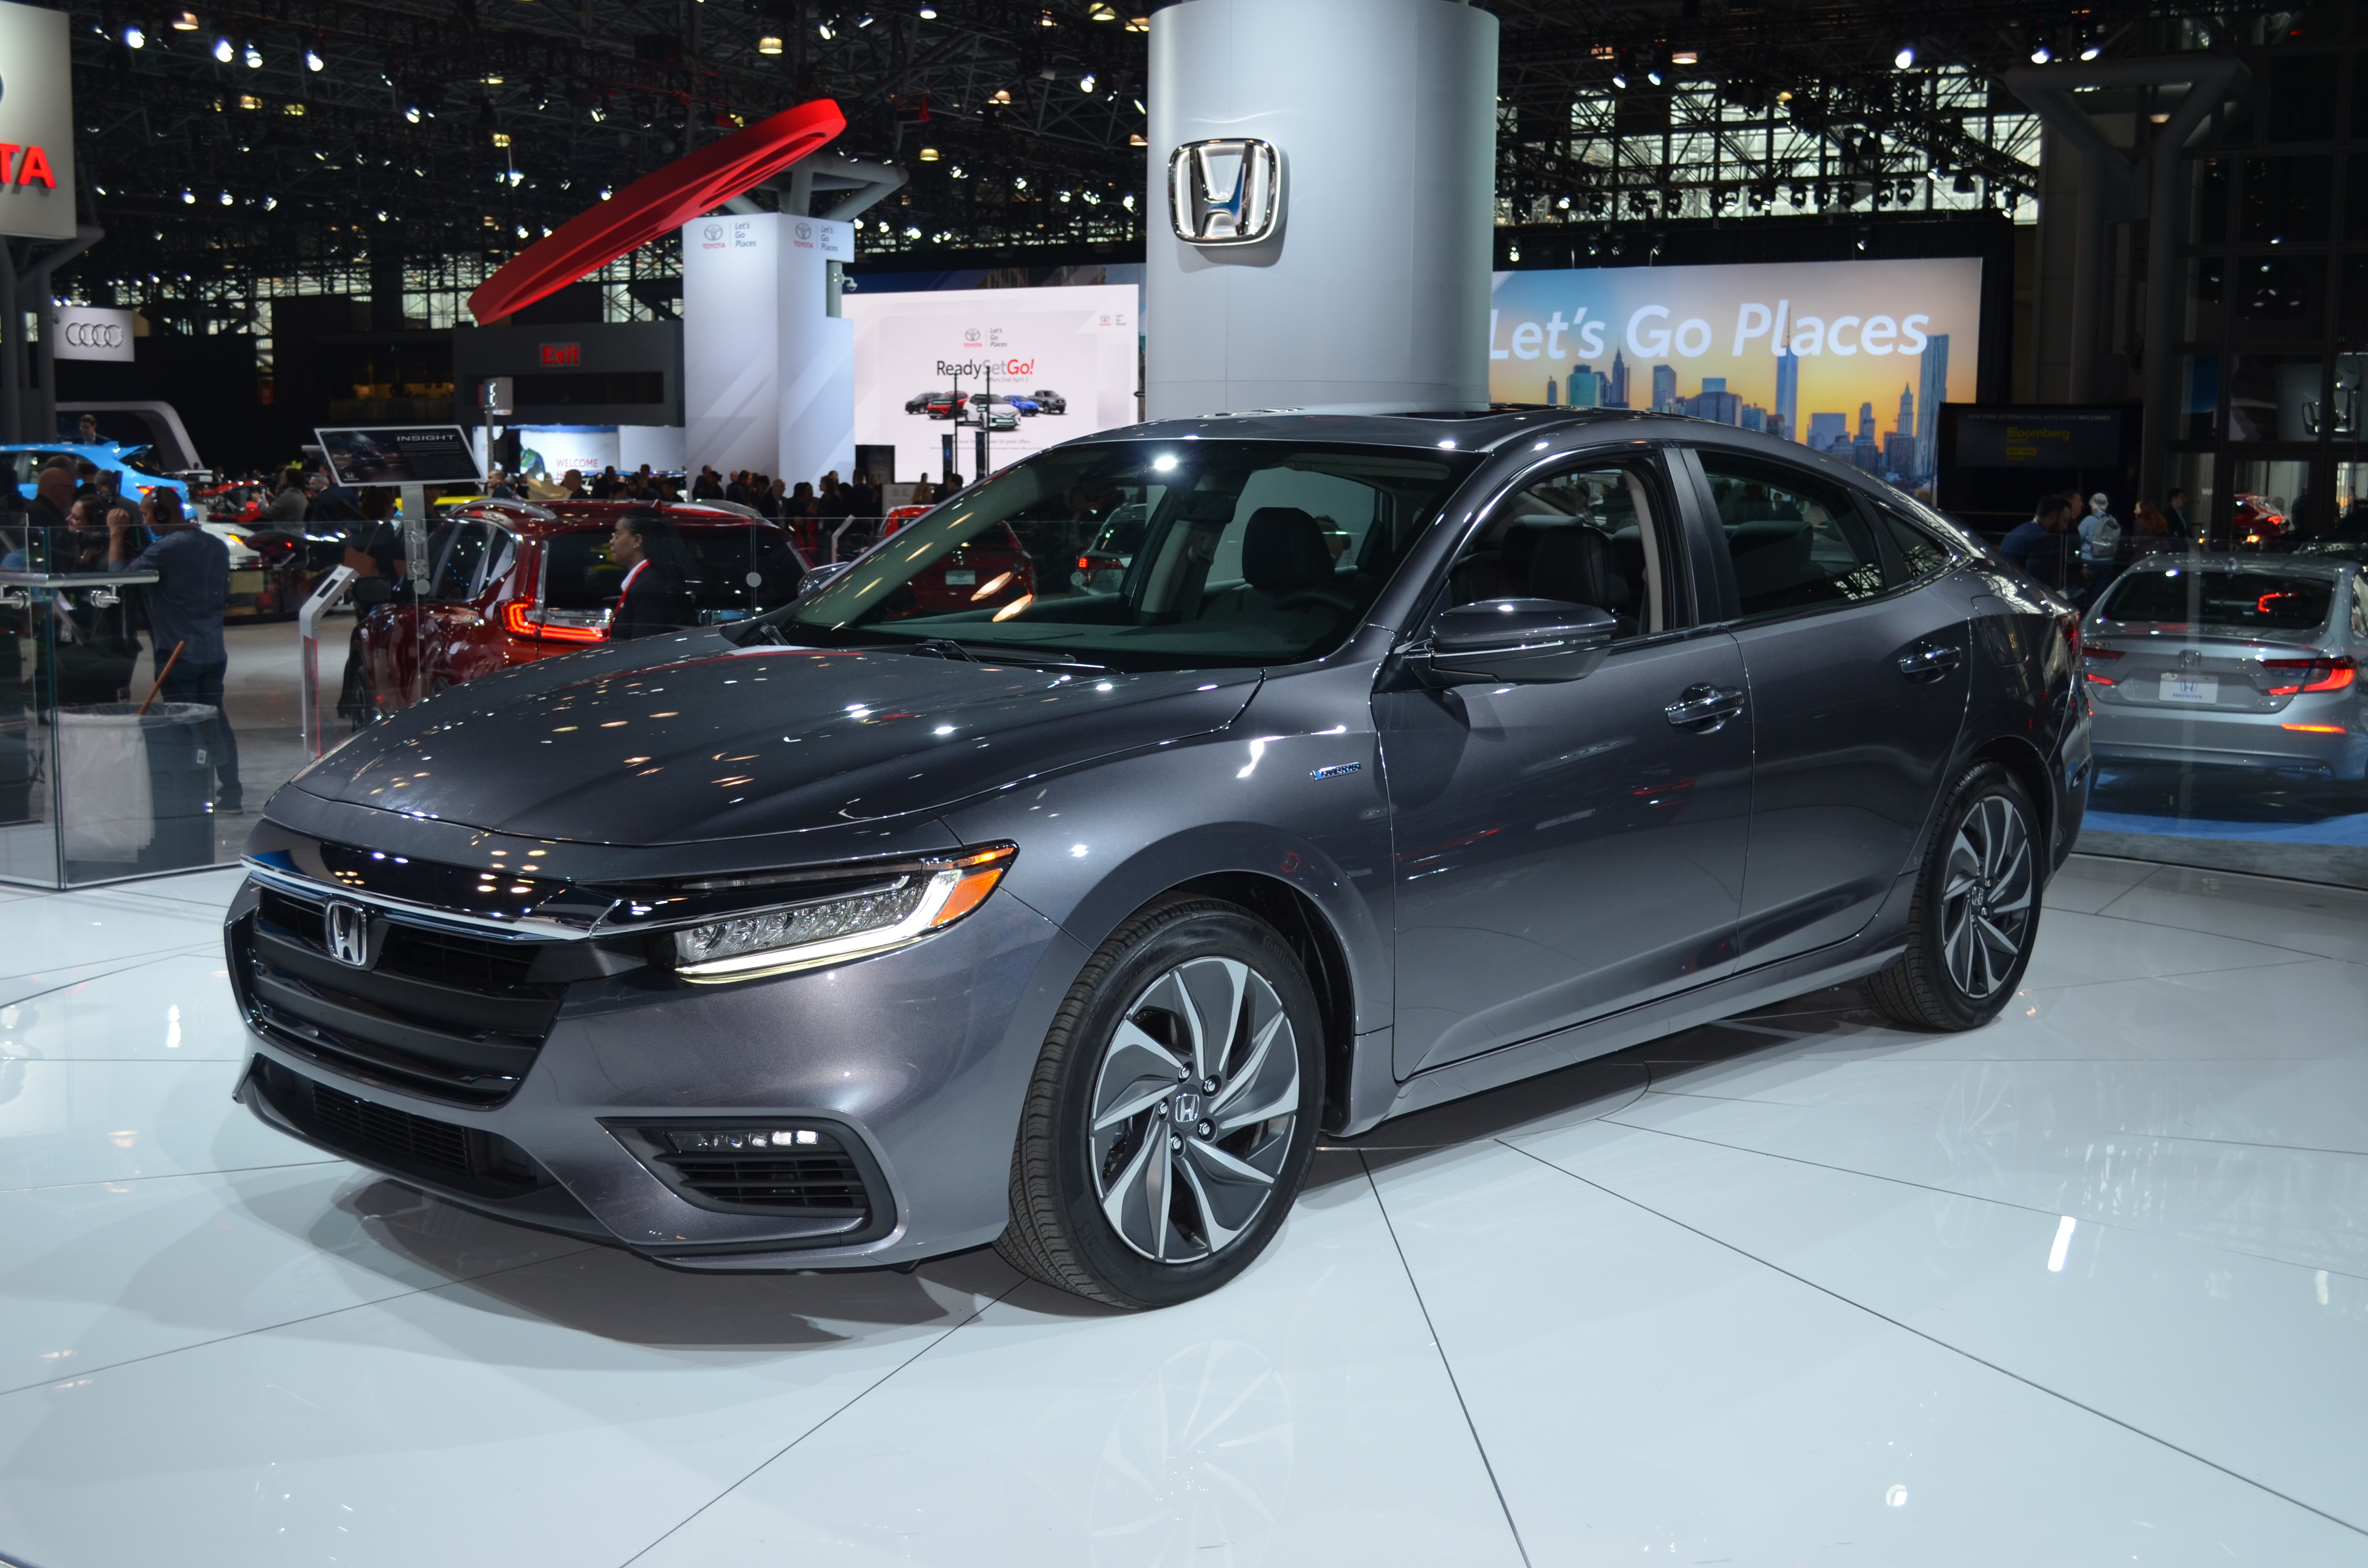 Honda's highly-anticipated 2019 Insight compact hybrid made its global debut at this year's New York International Auto Show. The Insight Hybrid is a spacious, five-passenger sedan that offers an elegant design and an fuel economy range in excess of 50 mpg.